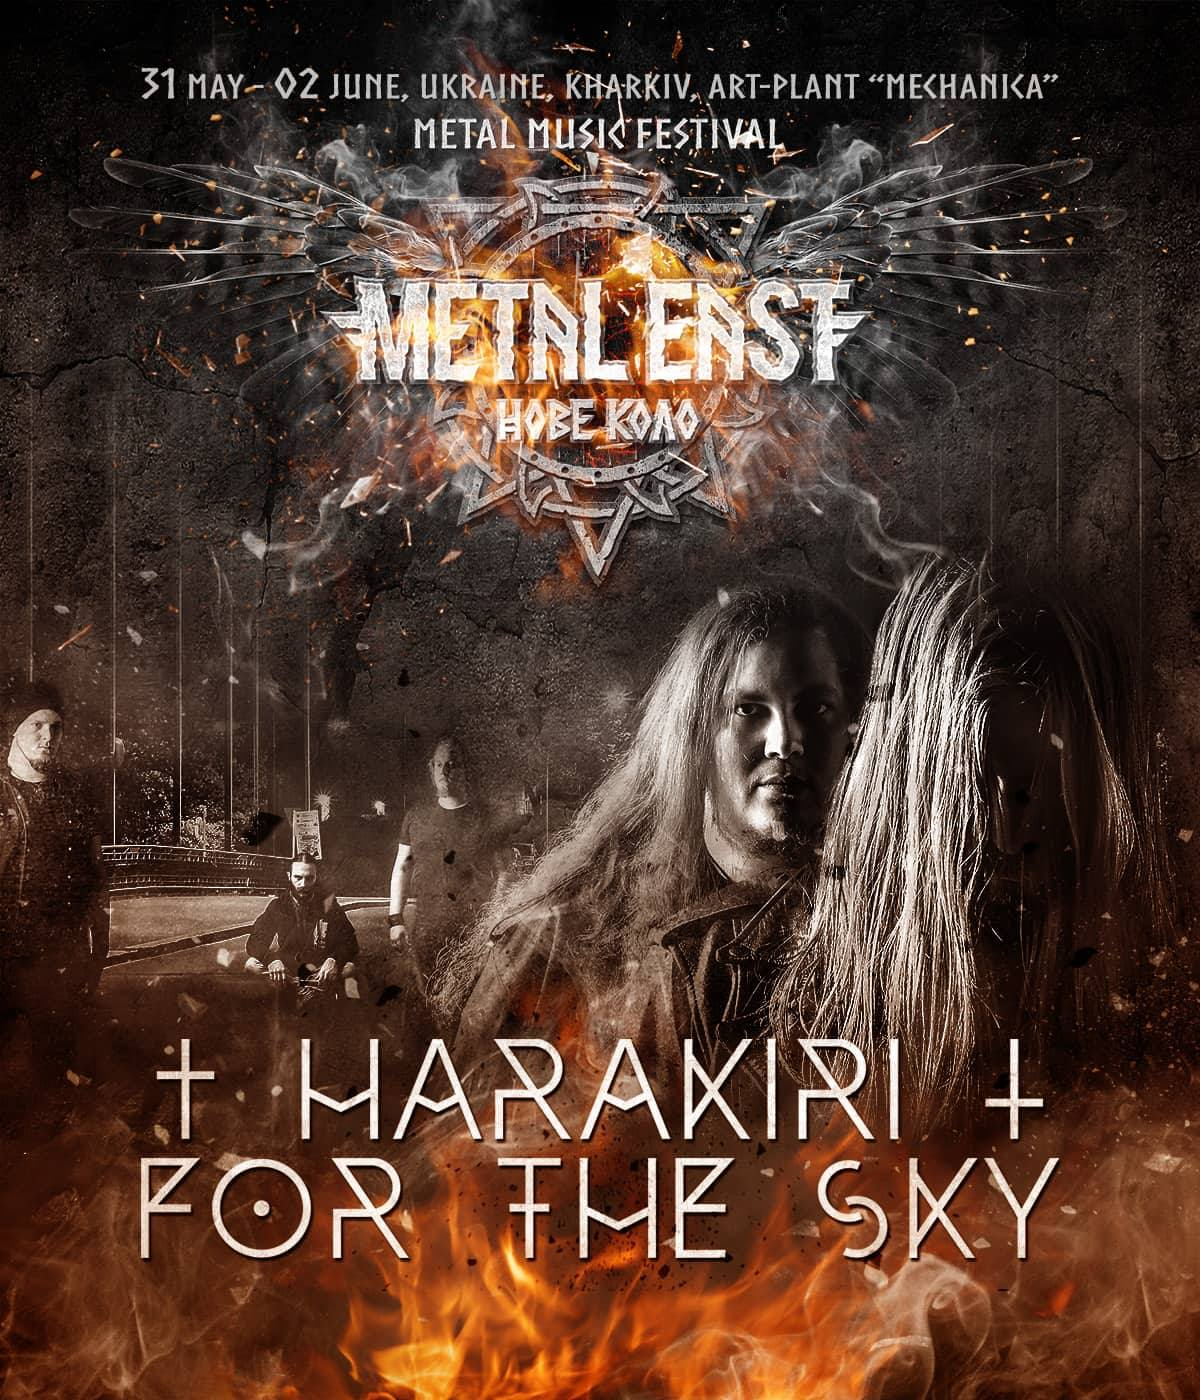 HARAKIRI FOR THE SKY will enter the stage of Metal East Nove Kolo festival in Kharkiv, Ukraine, from May 31st to June 2nd of 2019